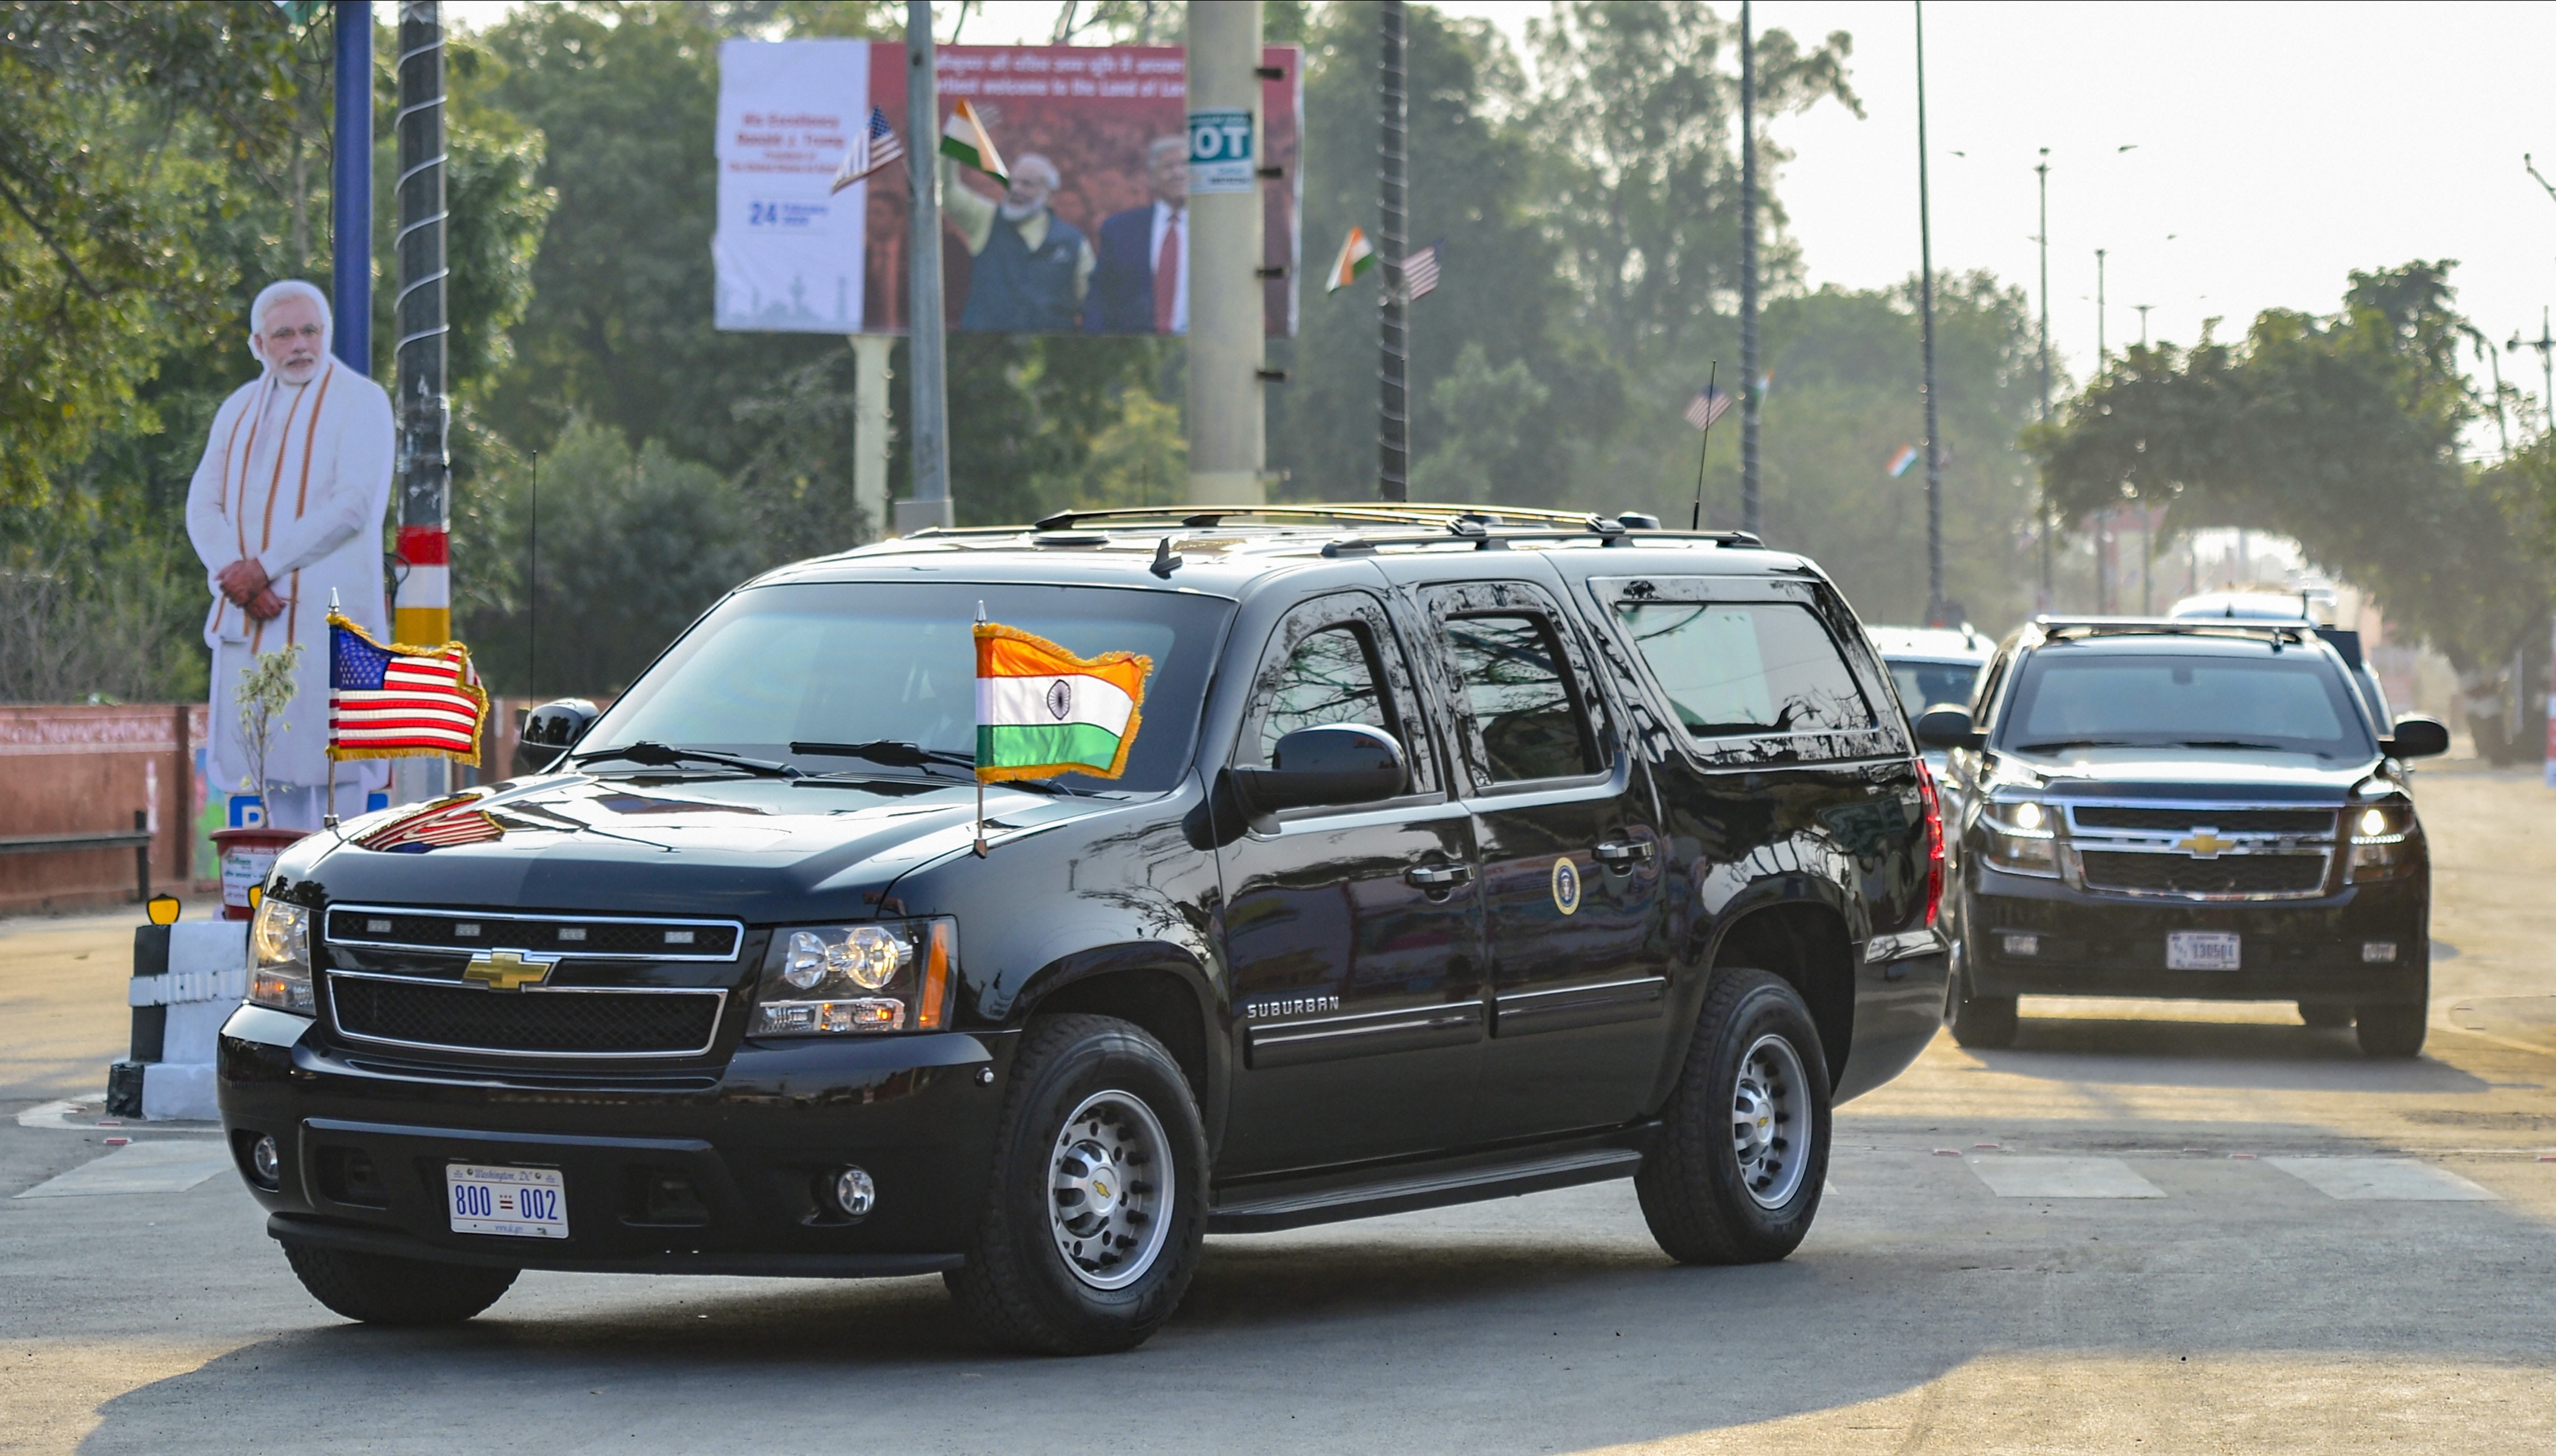 Motorcade of the U.S. President Donald Trump arrives in Agra, Monday, February 24, 2020